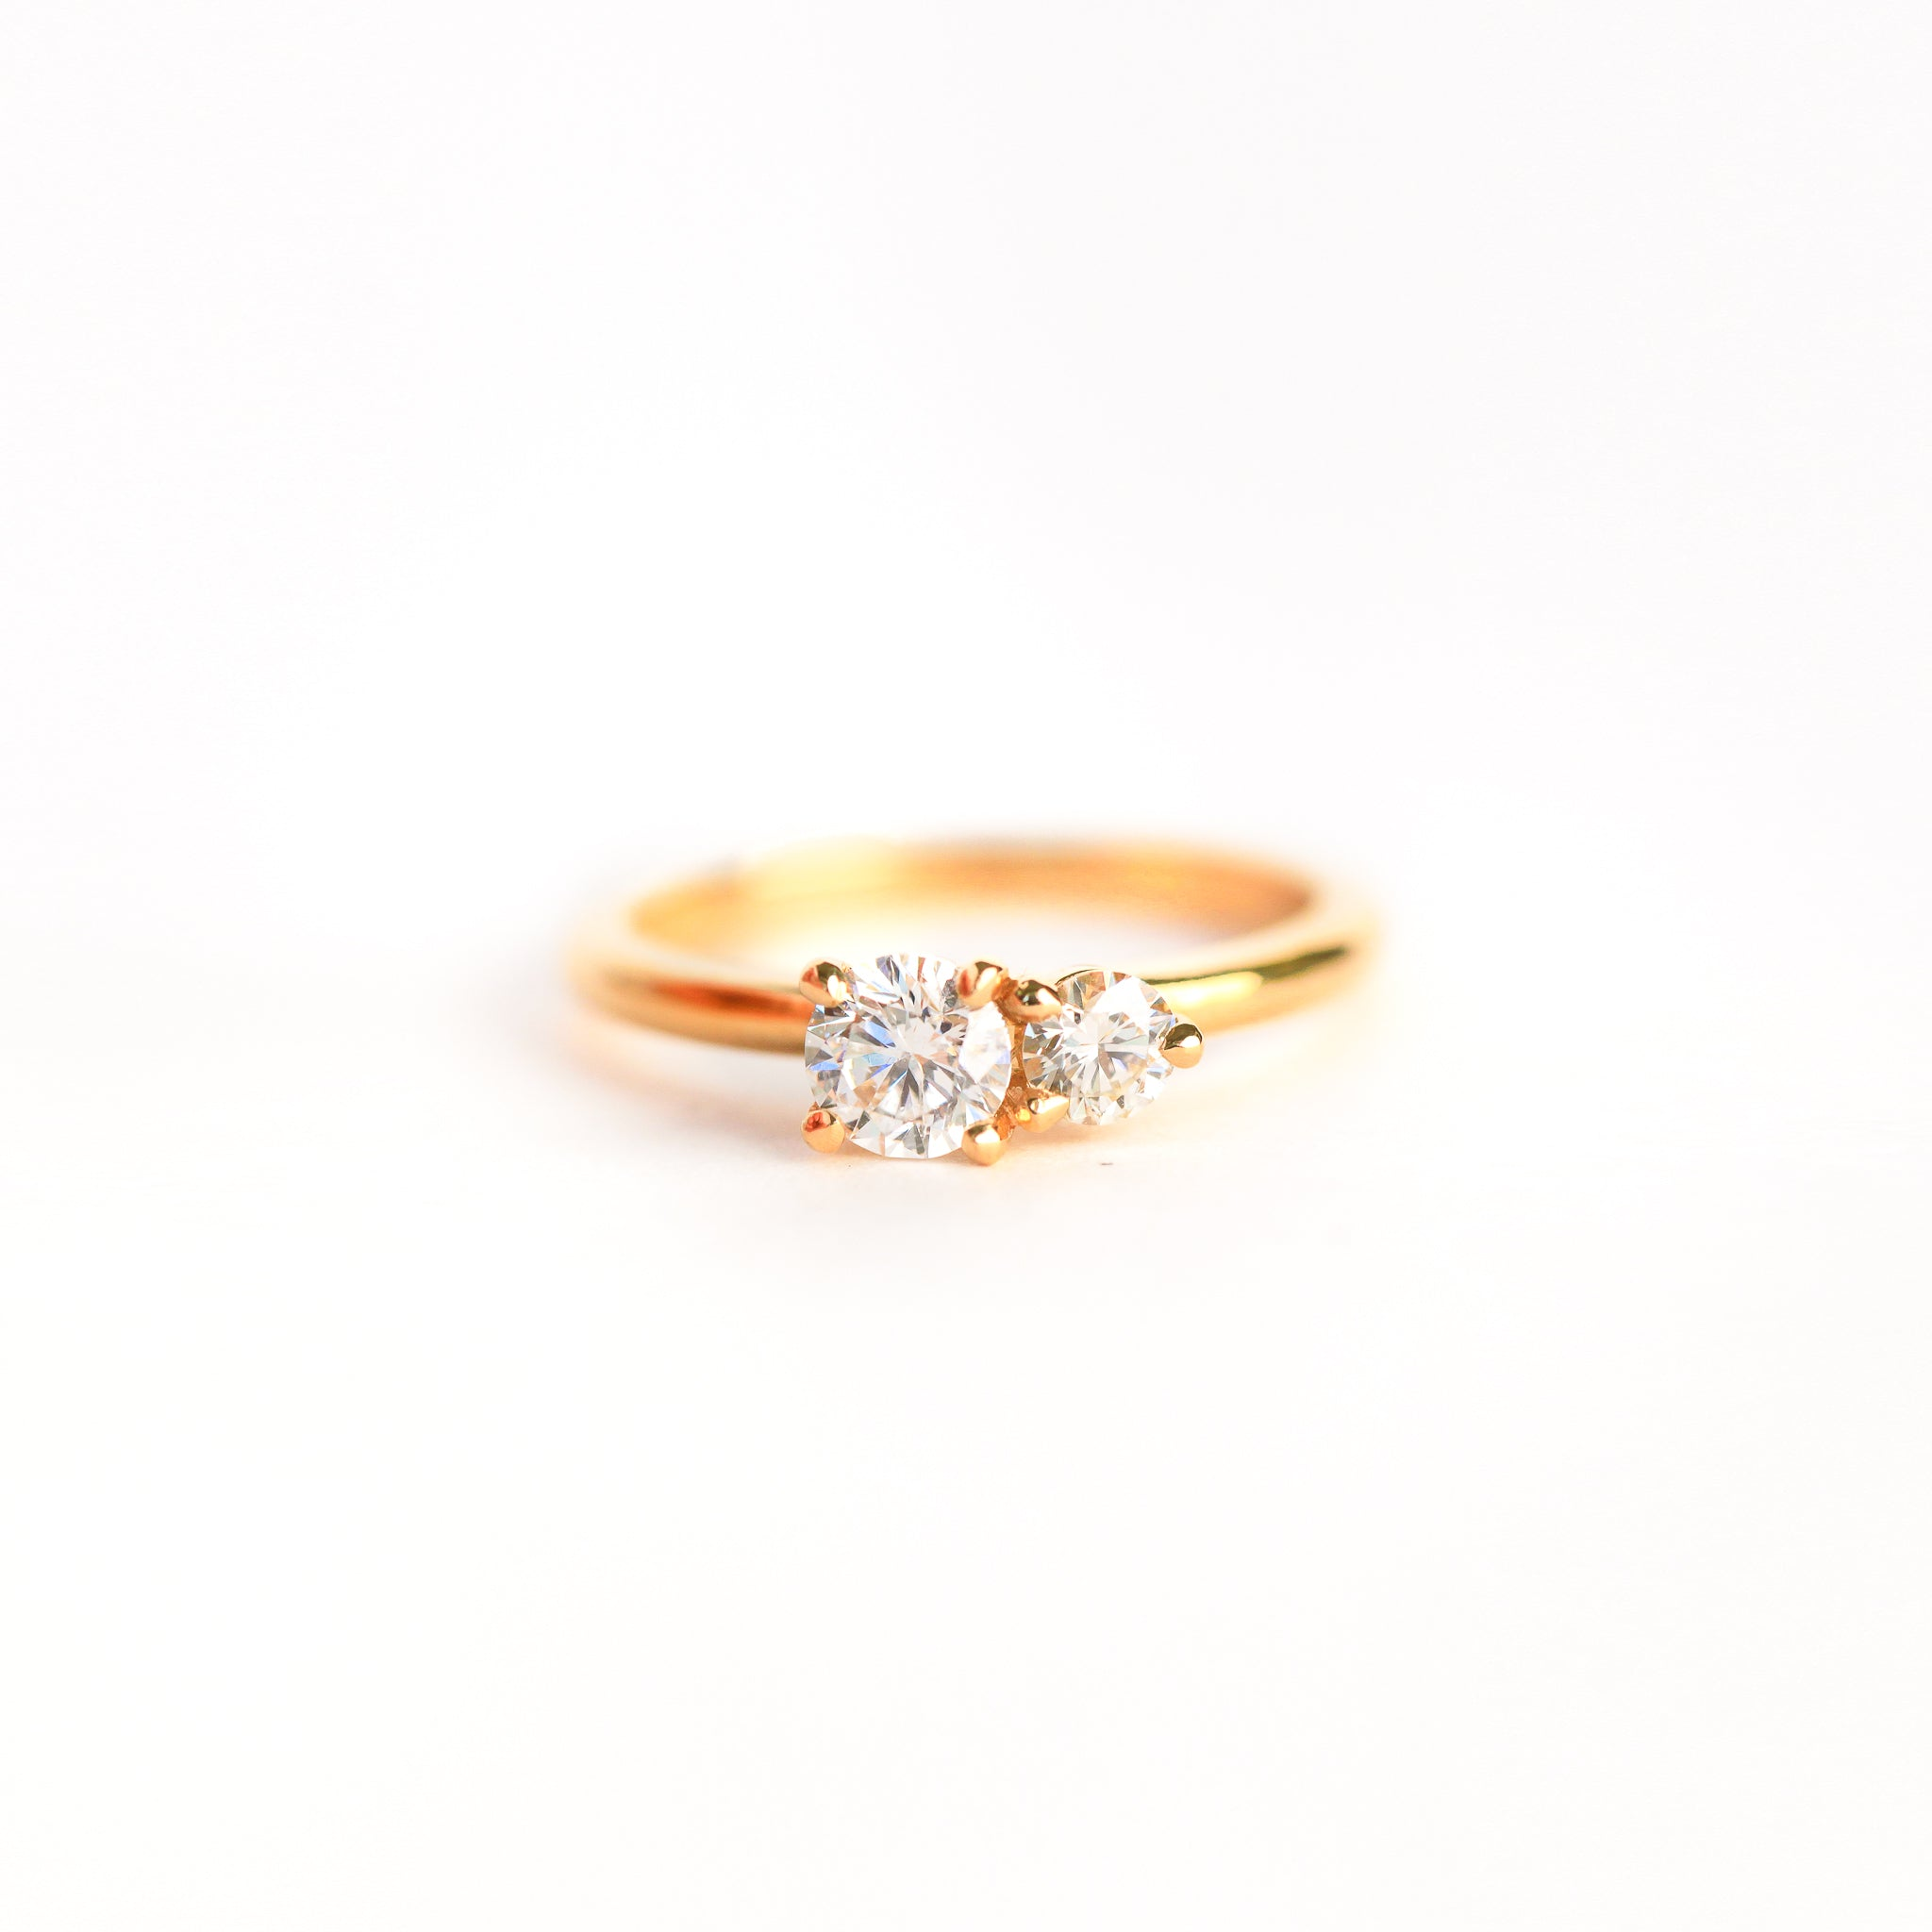 Handmade Two Stone Diamond Engagement Ring in 18ct Yellow Gold